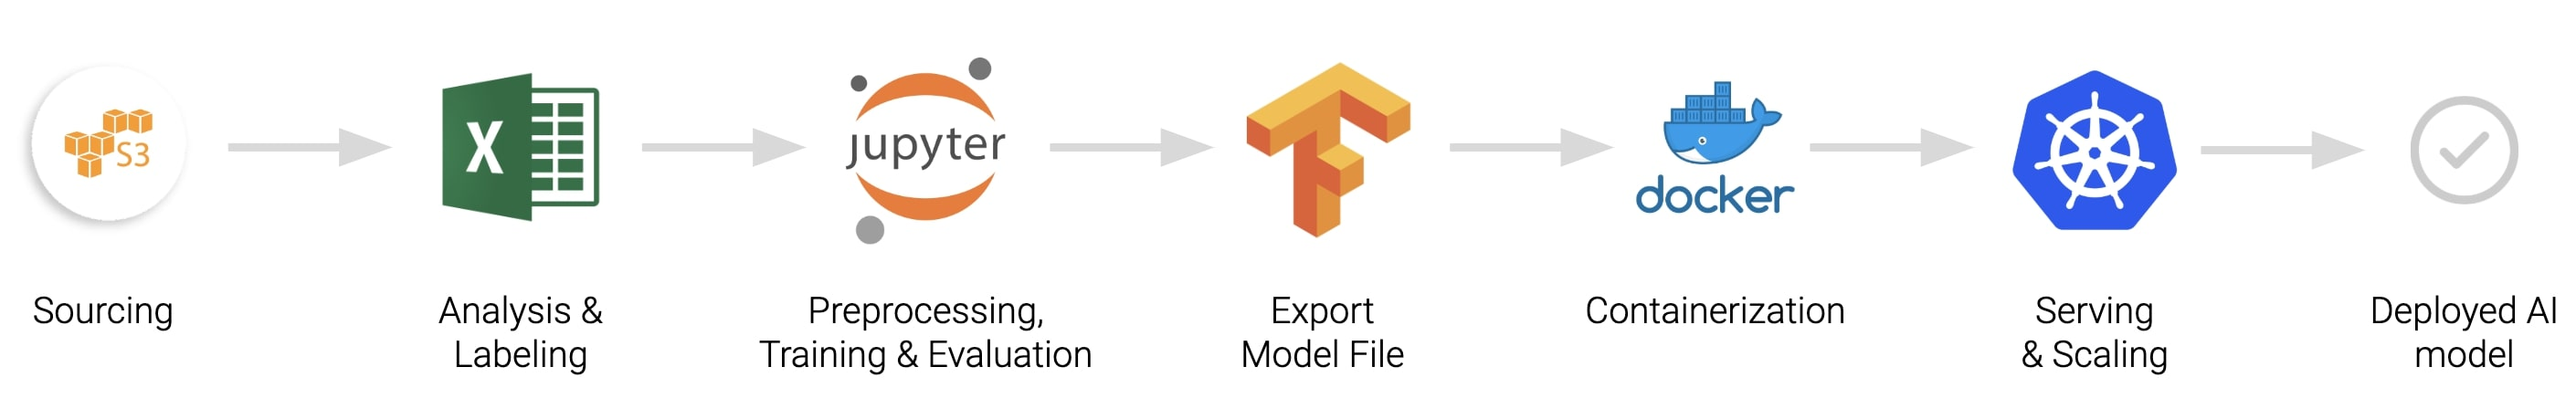 The different steps in the traditional process for building AImodels